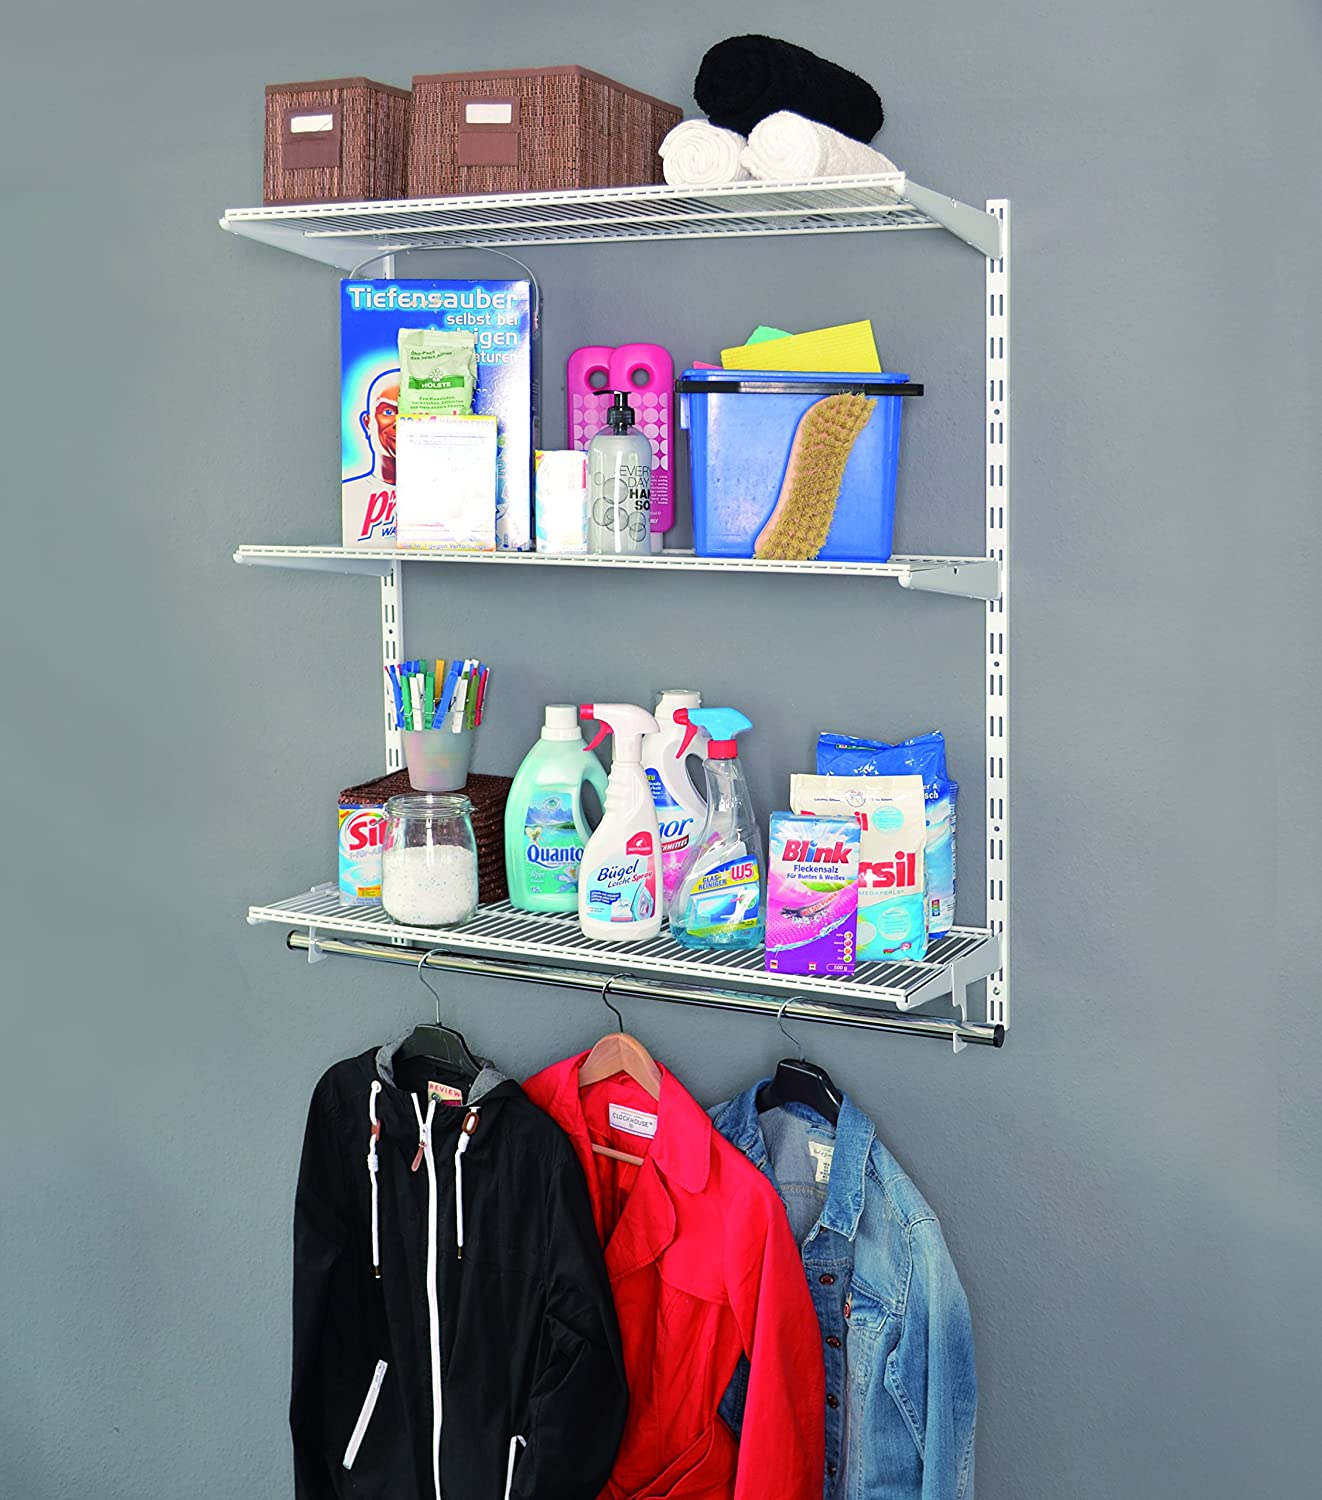 Element System 11356-00010 Wall Shelf Set Solution for Laundry Room ...